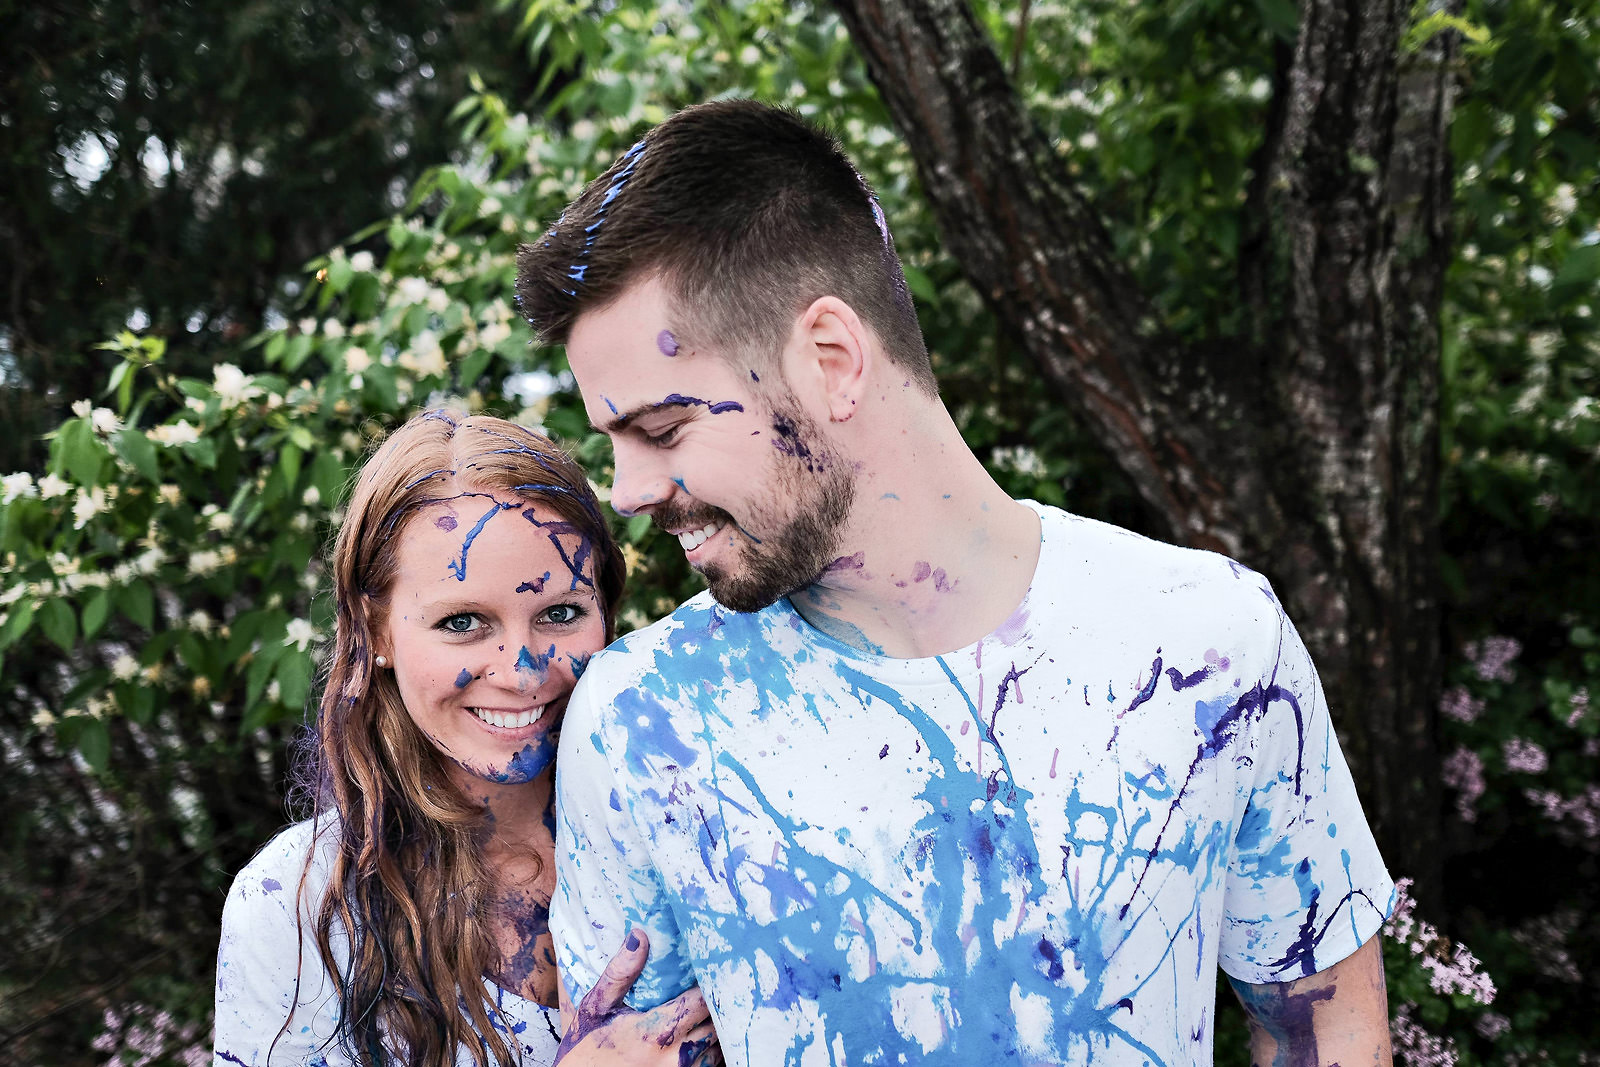 painted-face-engagement-couple